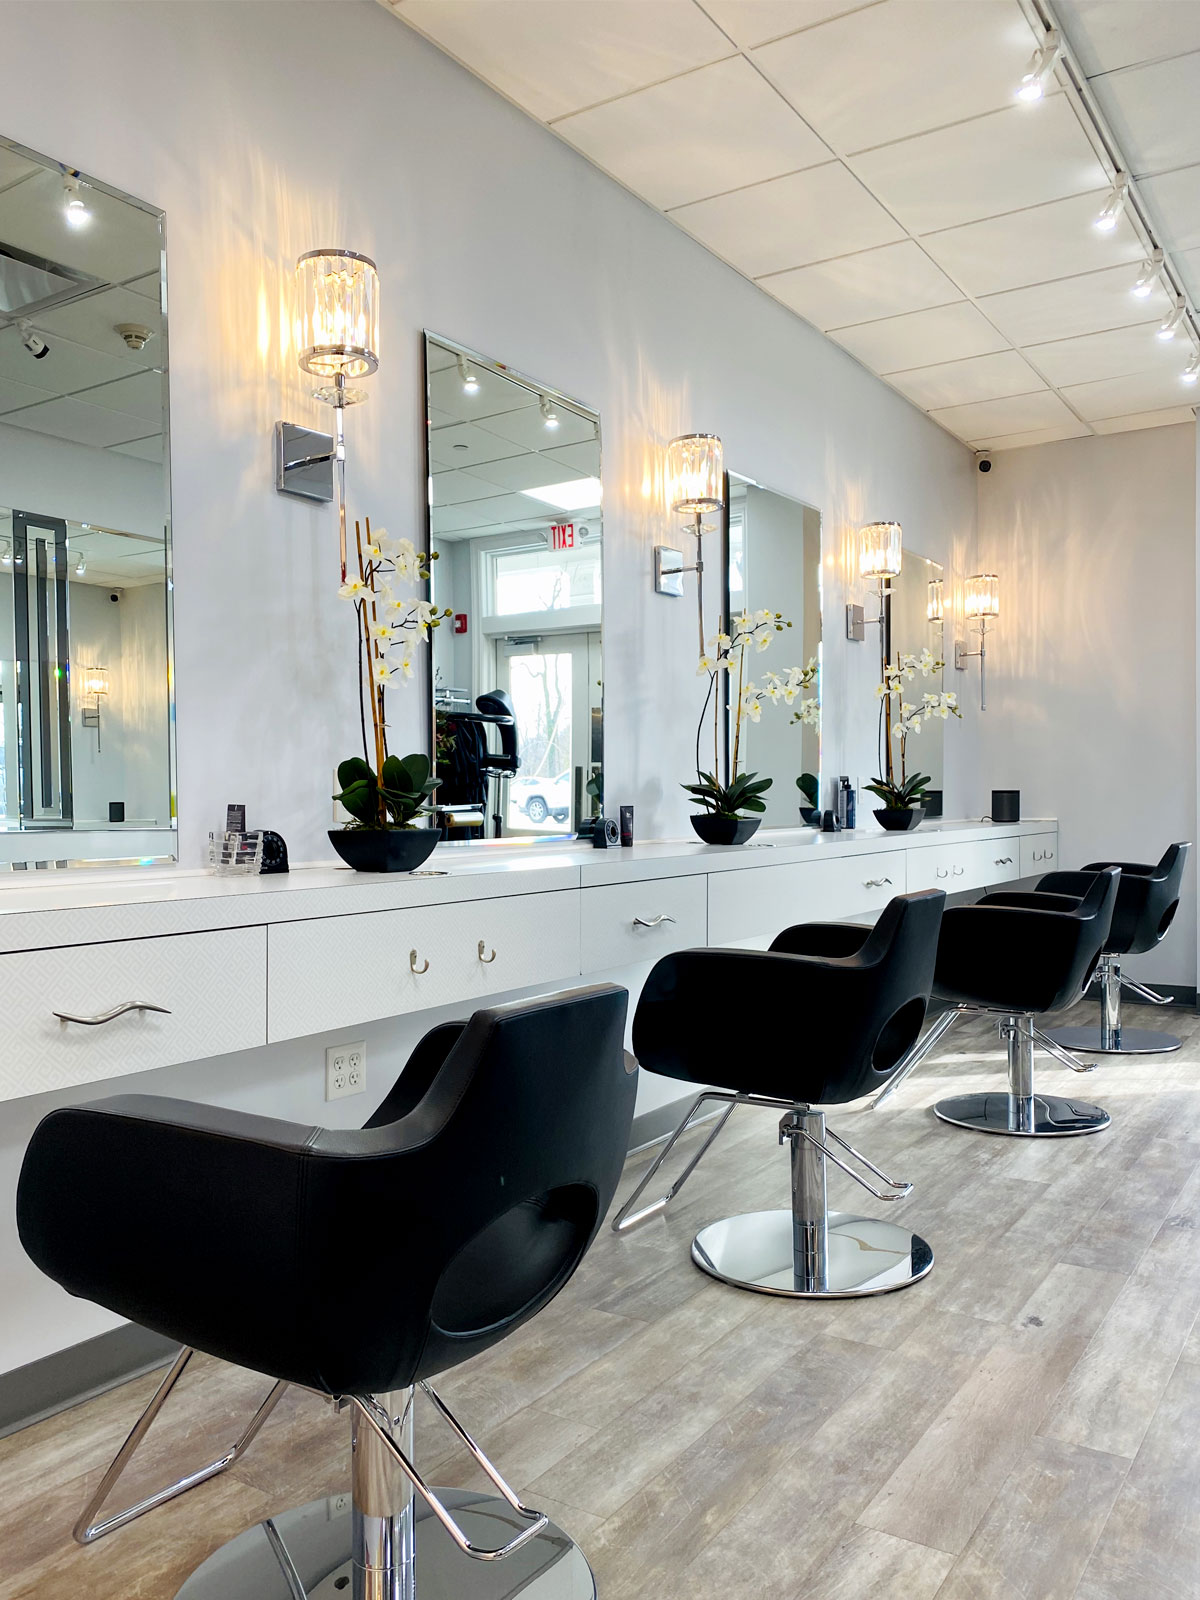 Julia's Salon & Company - Darien Ct